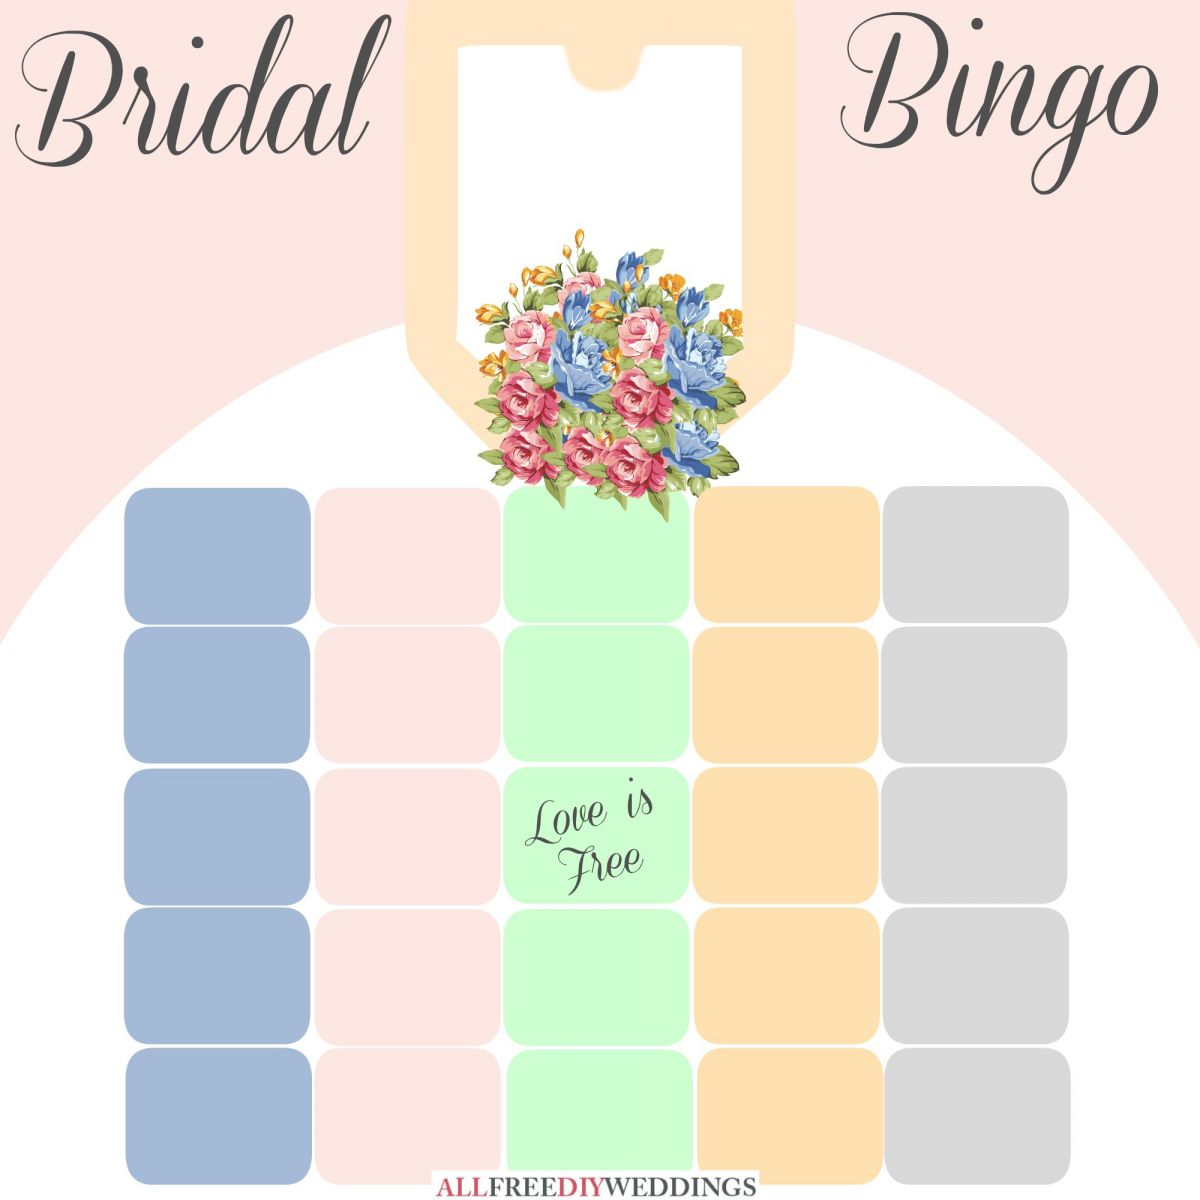 picture relating to Bridal Shower Bingo Free Printable identified as Refreshing Bridal Bingo: Free of charge Bridal Shower Video games